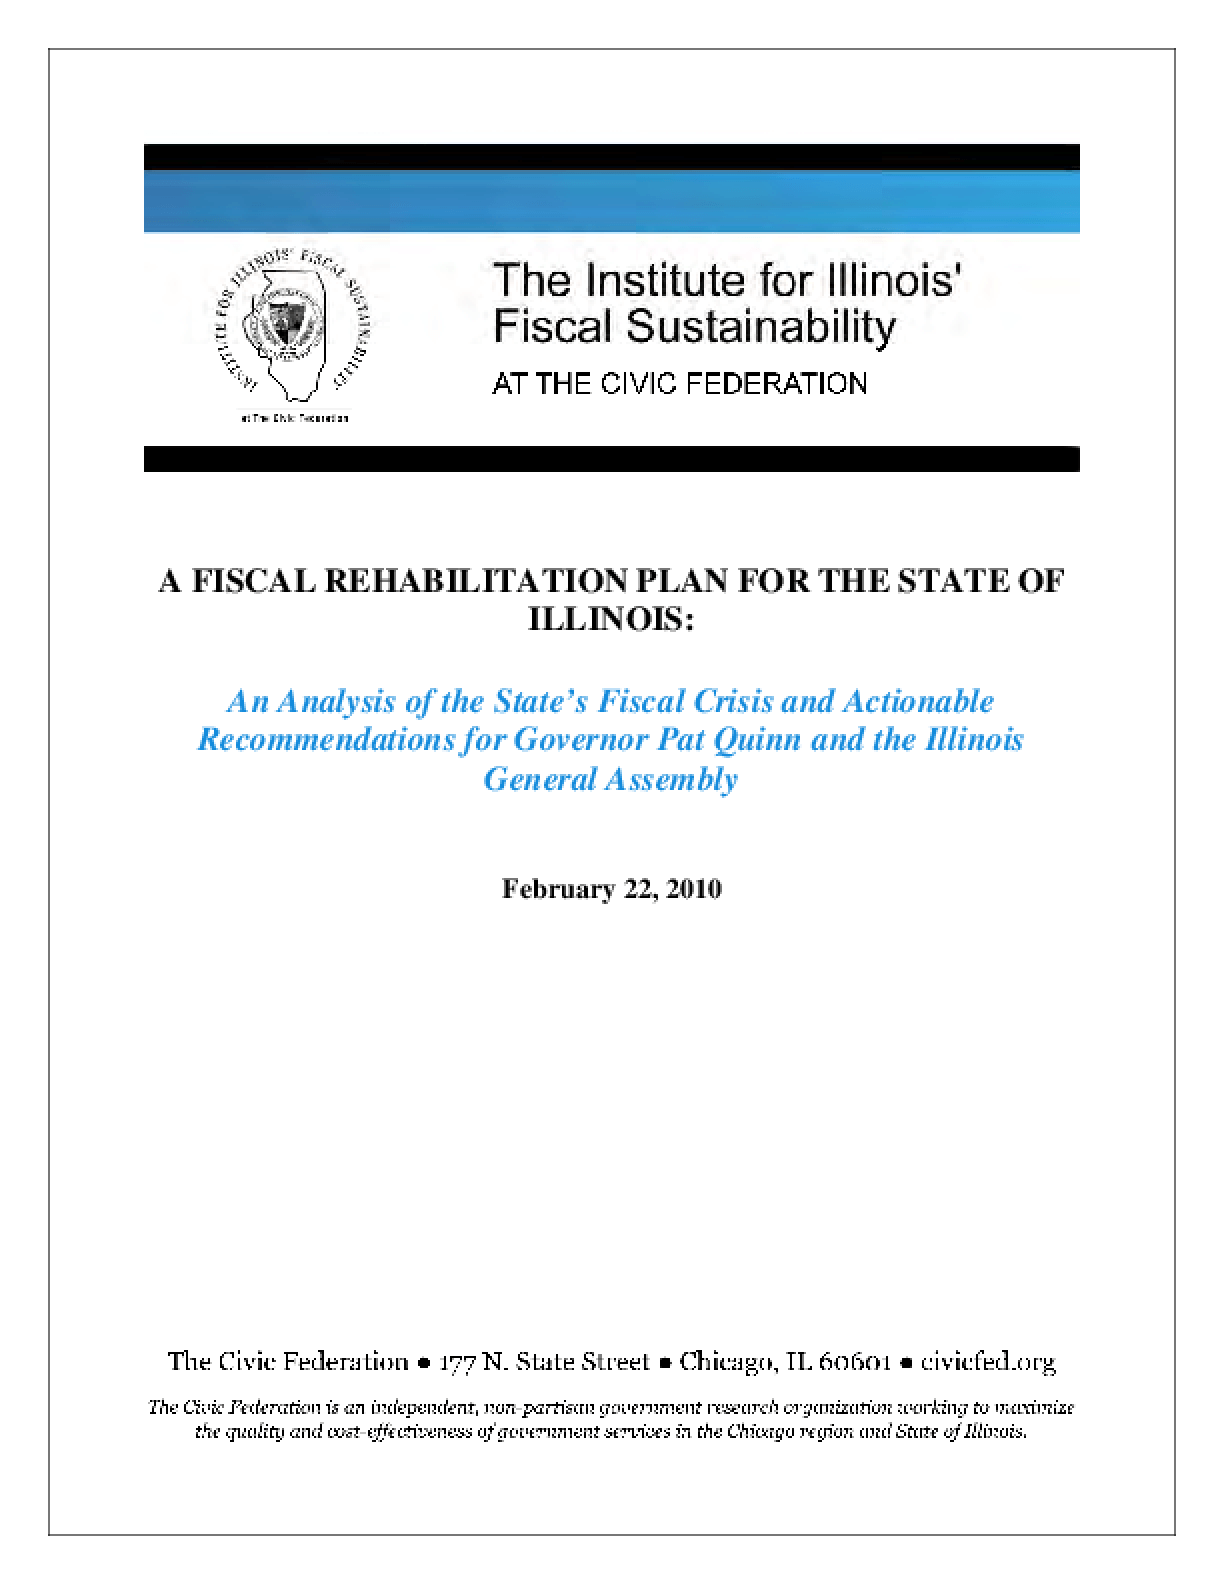 A Fiscal Rehabilitation Plan for the State of Illinois